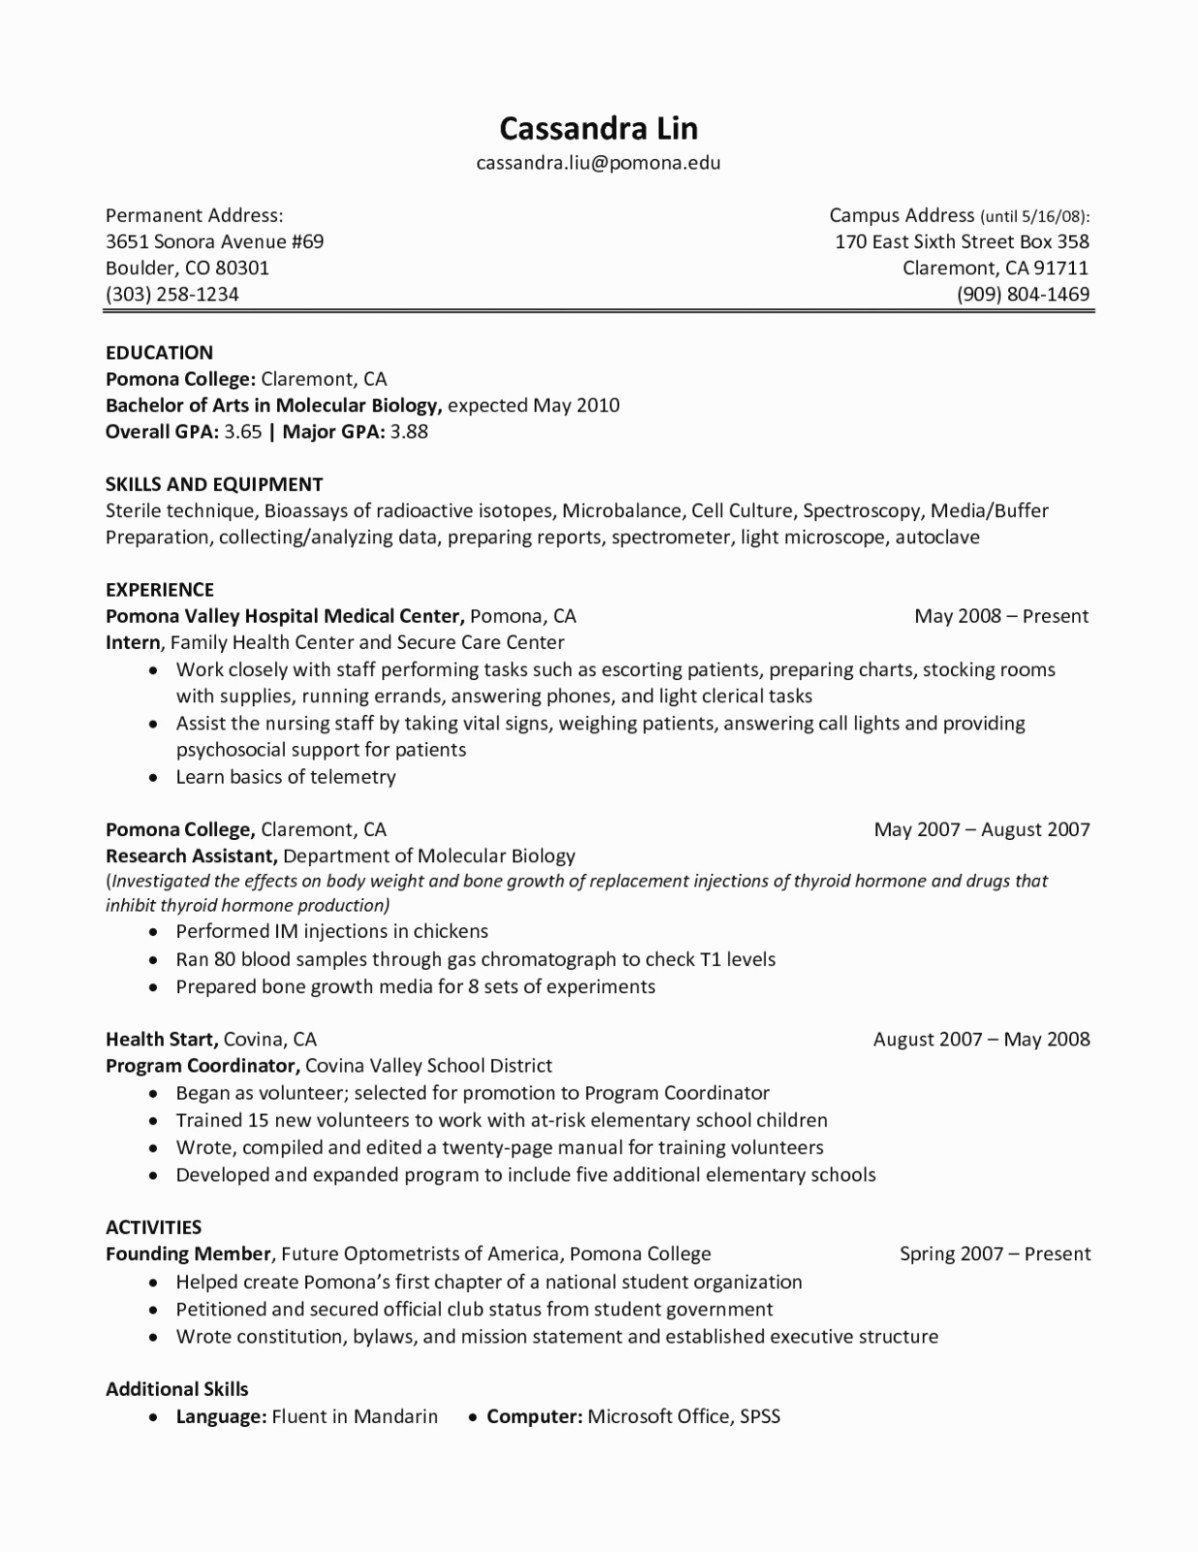 Biology Research Assistant Resume New 10 Molecular Biology Lab